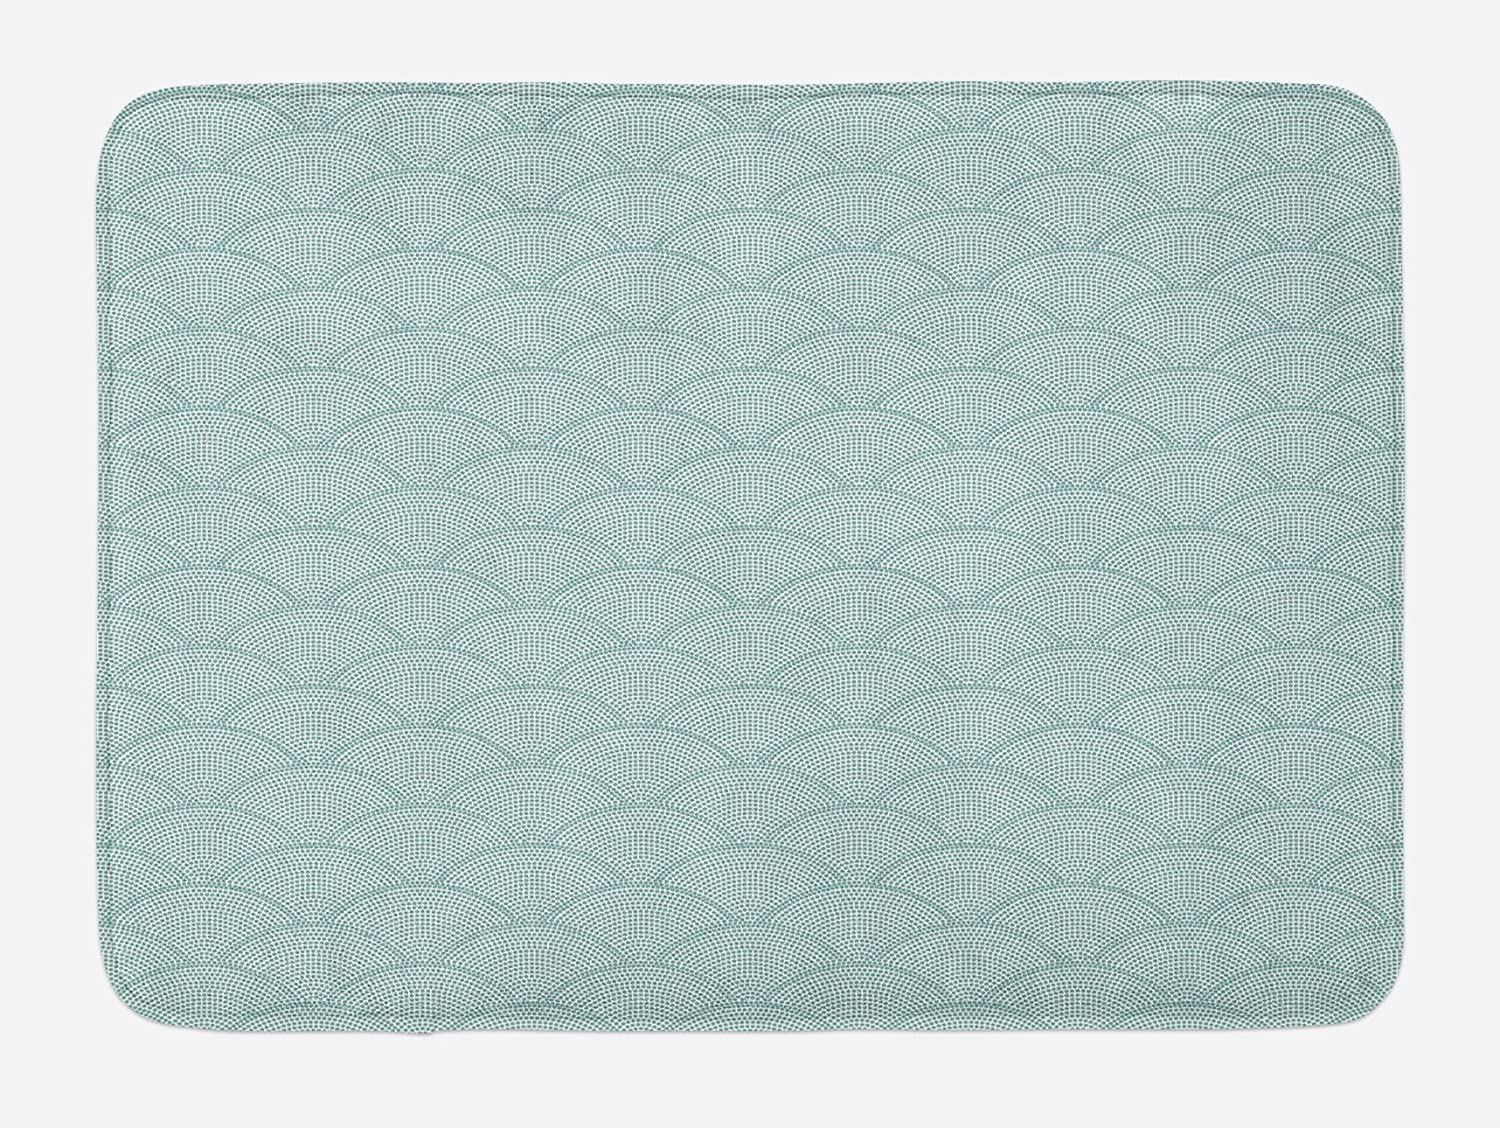 "Ambesonne Geometric Bath Mat, Fish Scale Pattern Half Circles Dots Geometric Arrangement Circular Motifs, Plush Bathroom Decor Mat with Non Slip Backing, 29.5"" X 17.5"", Seafoam White"